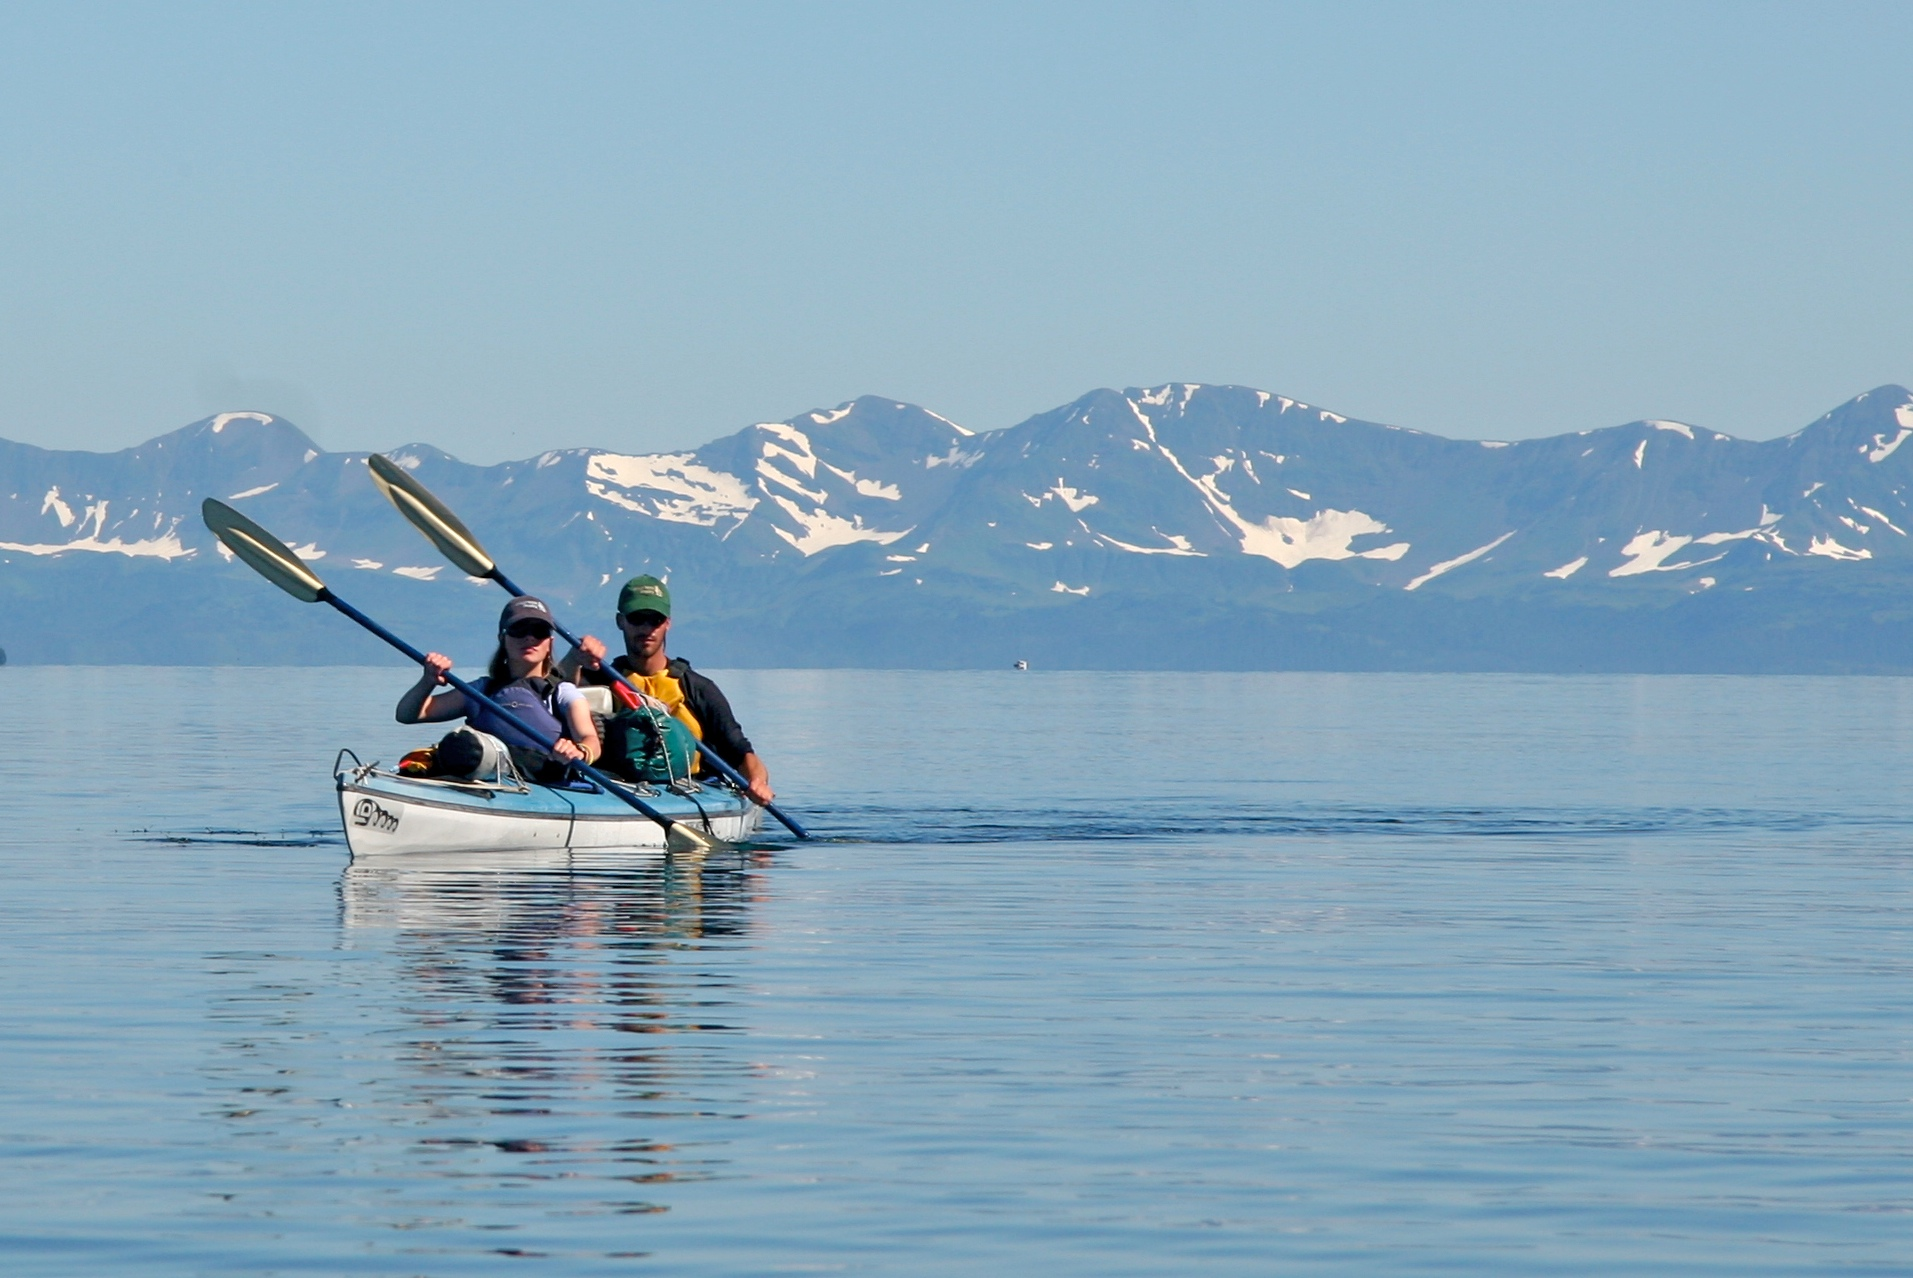 Two people in a blue and white tandem sea kayak with mountains in the background.